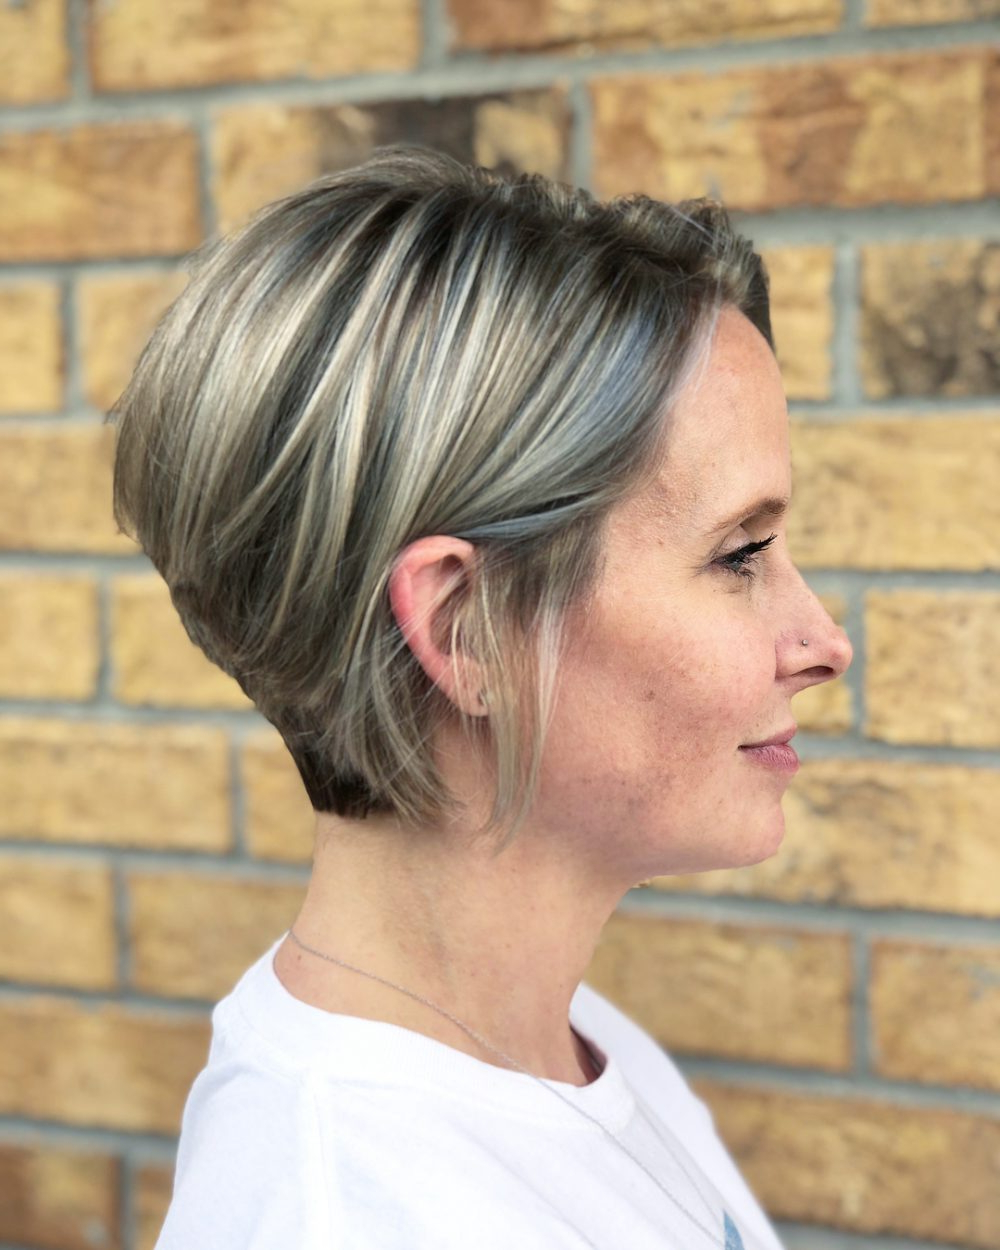 42 Sexiest Short Hairstyles For Women Over 40 In 2018 Pertaining To Short Haircuts For Women Over 40 With Curly Hair (View 22 of 25)